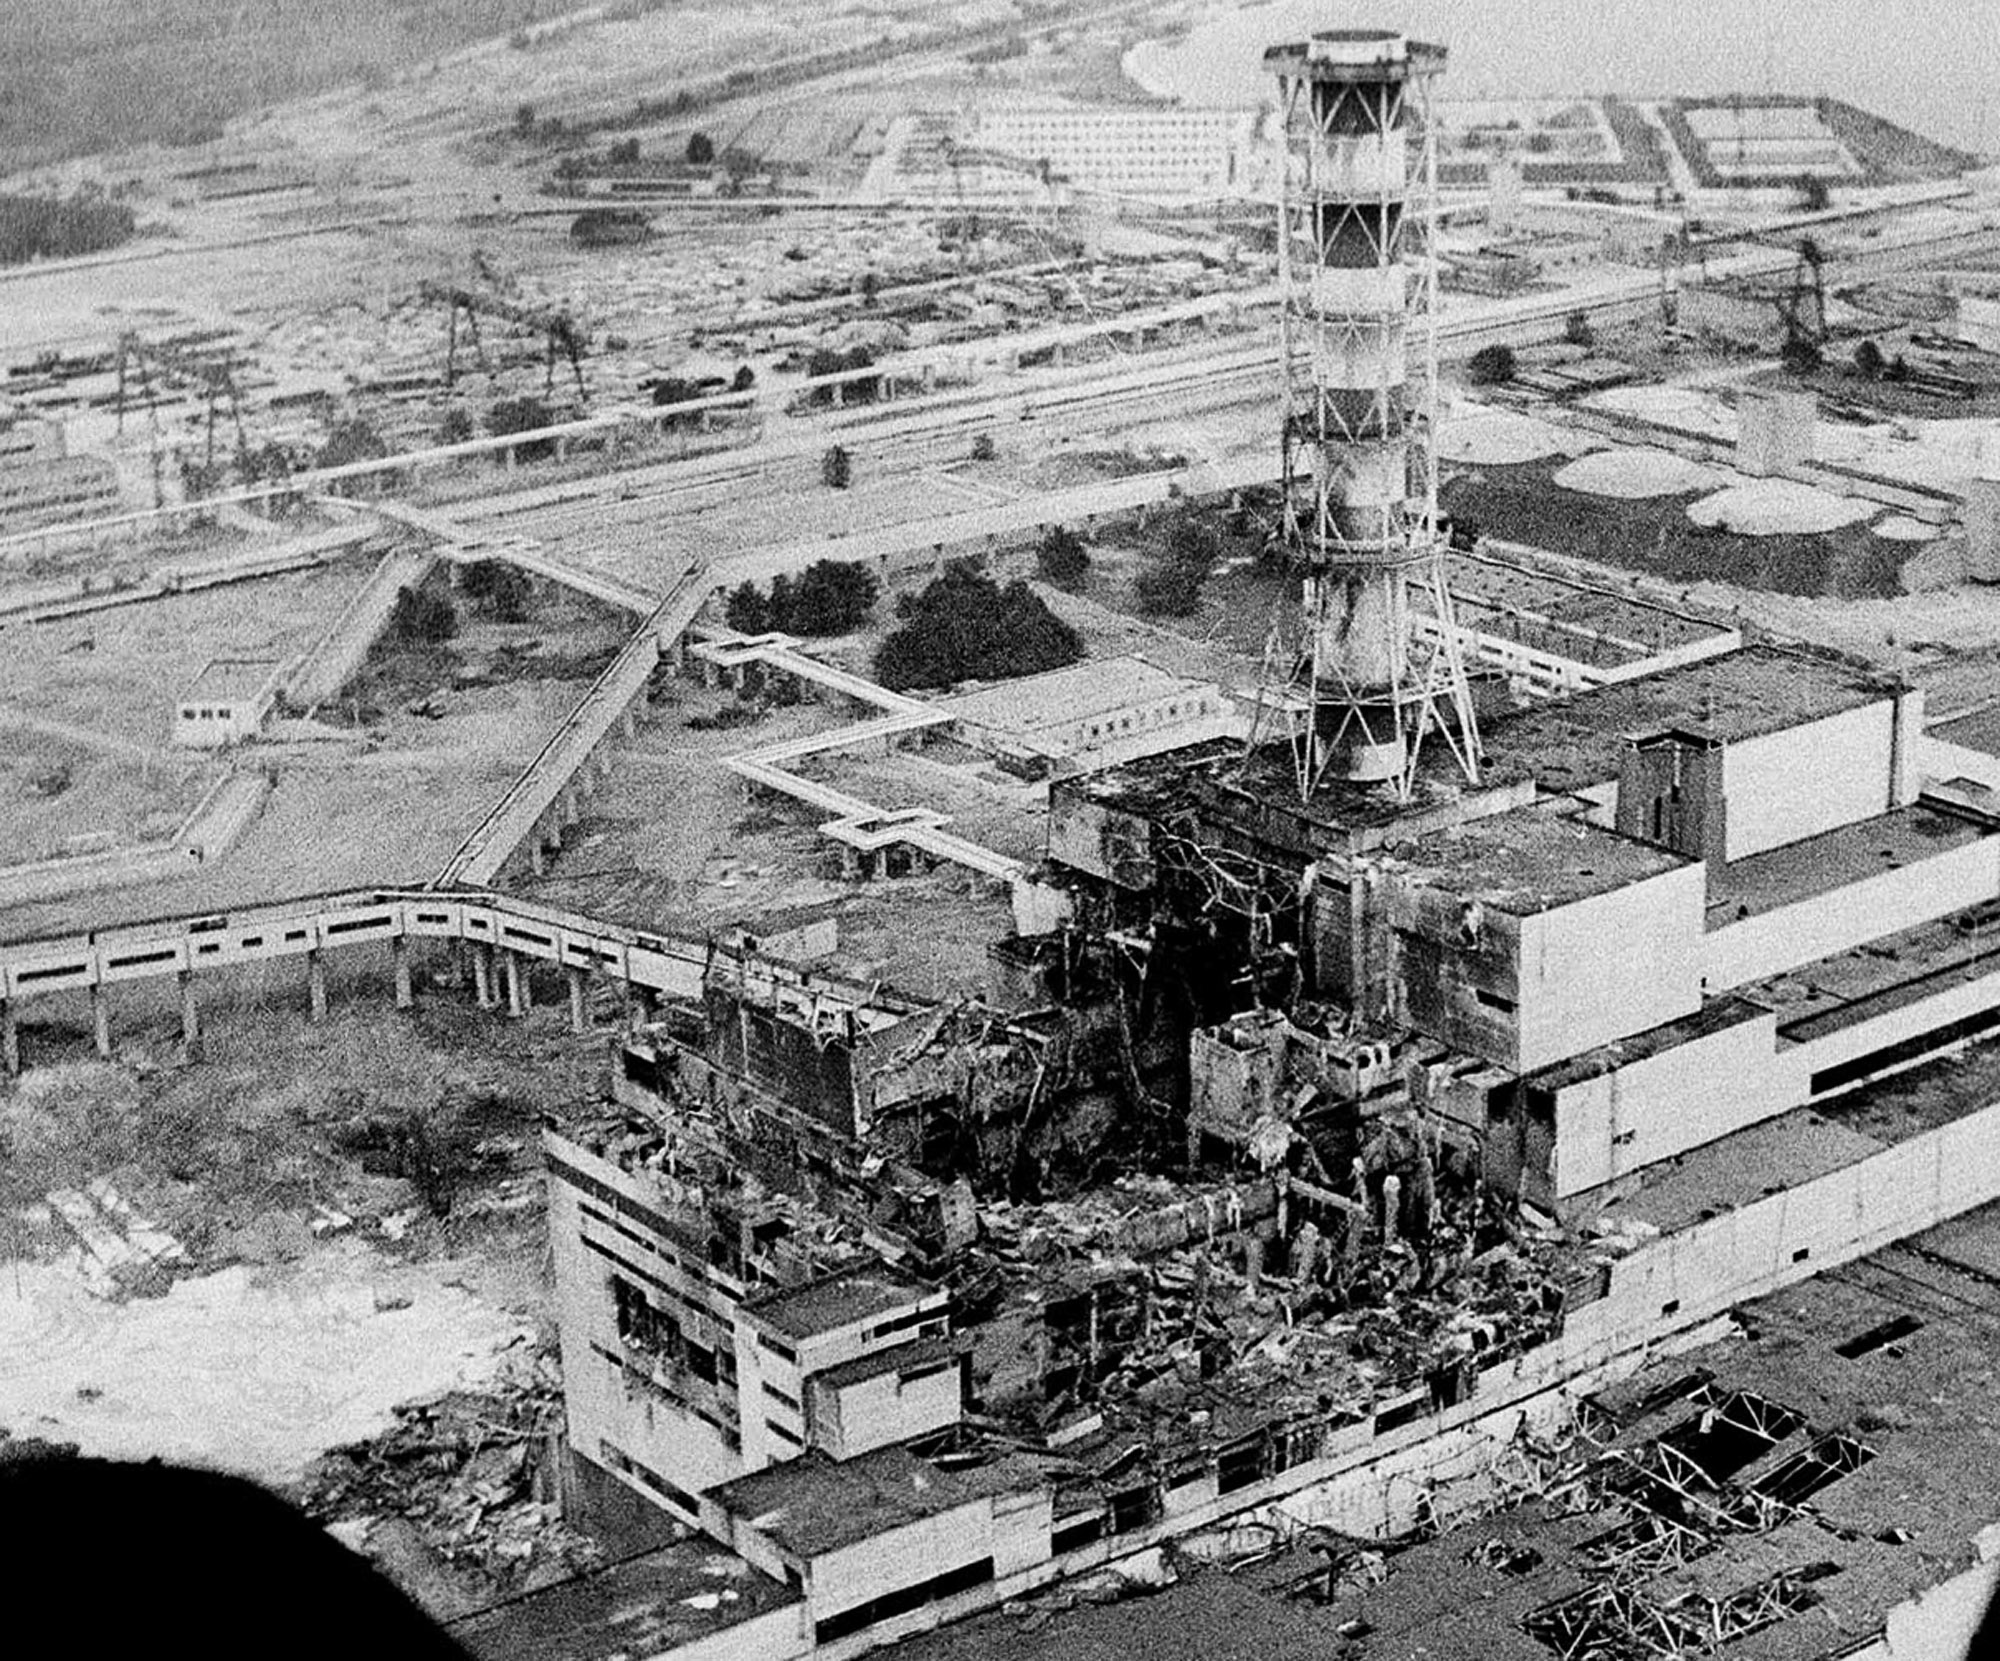 An aerial view of the Chernobyl nuclear power plant, the site of the world's worst nuclear accident, is seen two to three days after the April 26, 1986, explosion. In front of the chimney is the destroyed 4th reactor.   (AP Photo)